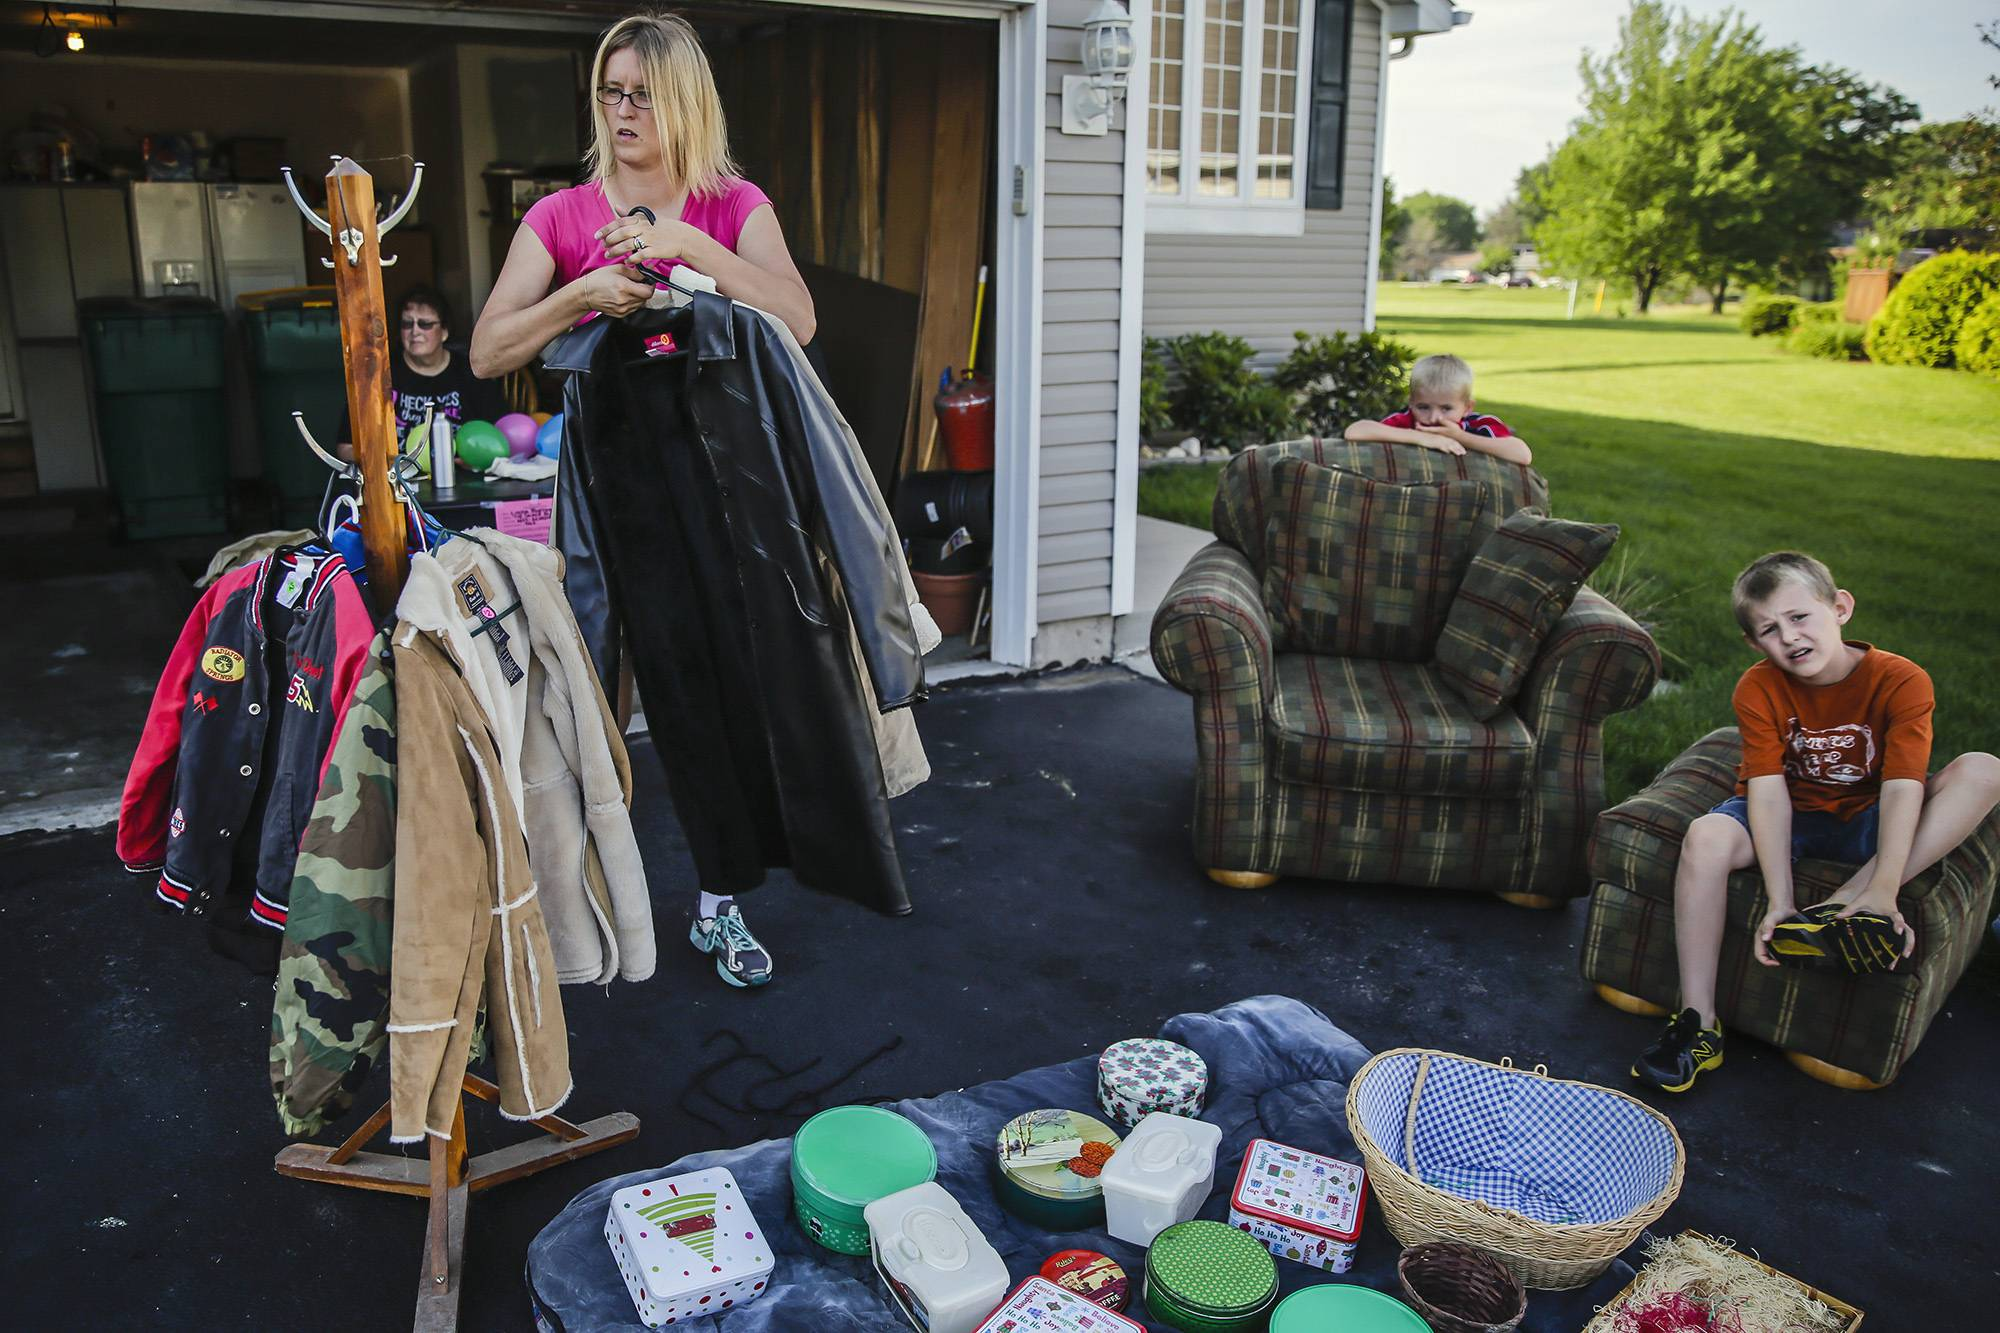 Heidi Cole hangs coats on a coat rack as she prepares for a garage sale at her mother Linda Burton's home in Joliet. The sale had some furniture, kids' toys, electronics and household items like silverware and glasses, including an old desktop computer and a toaster oven.